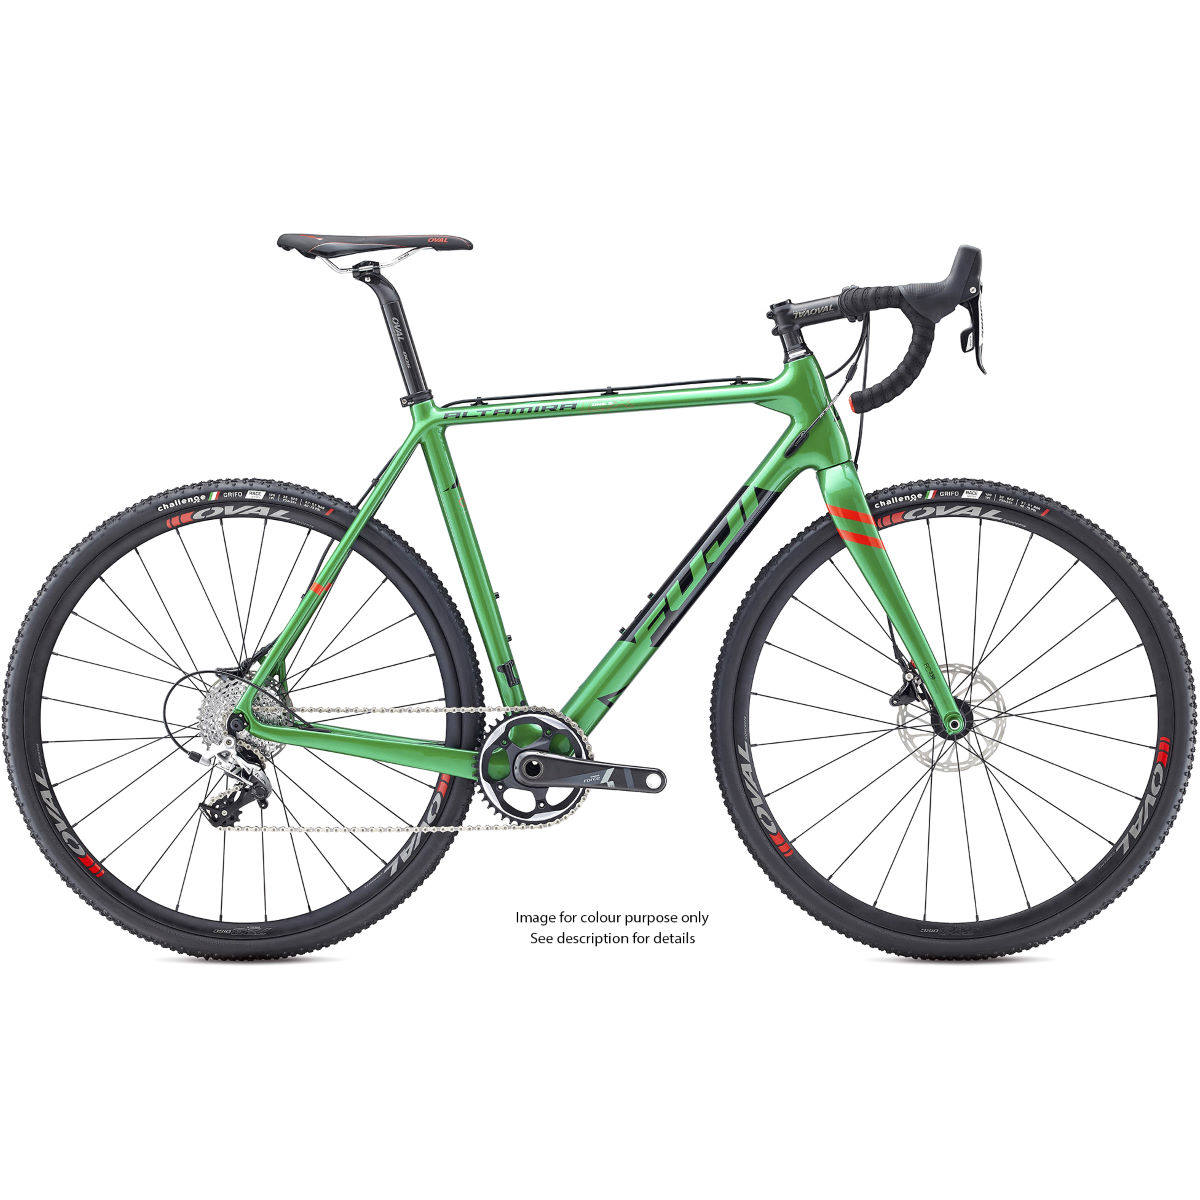 Fuji Altamira CX 1.3 Bike (2017) - Bicicletas de ciclocross